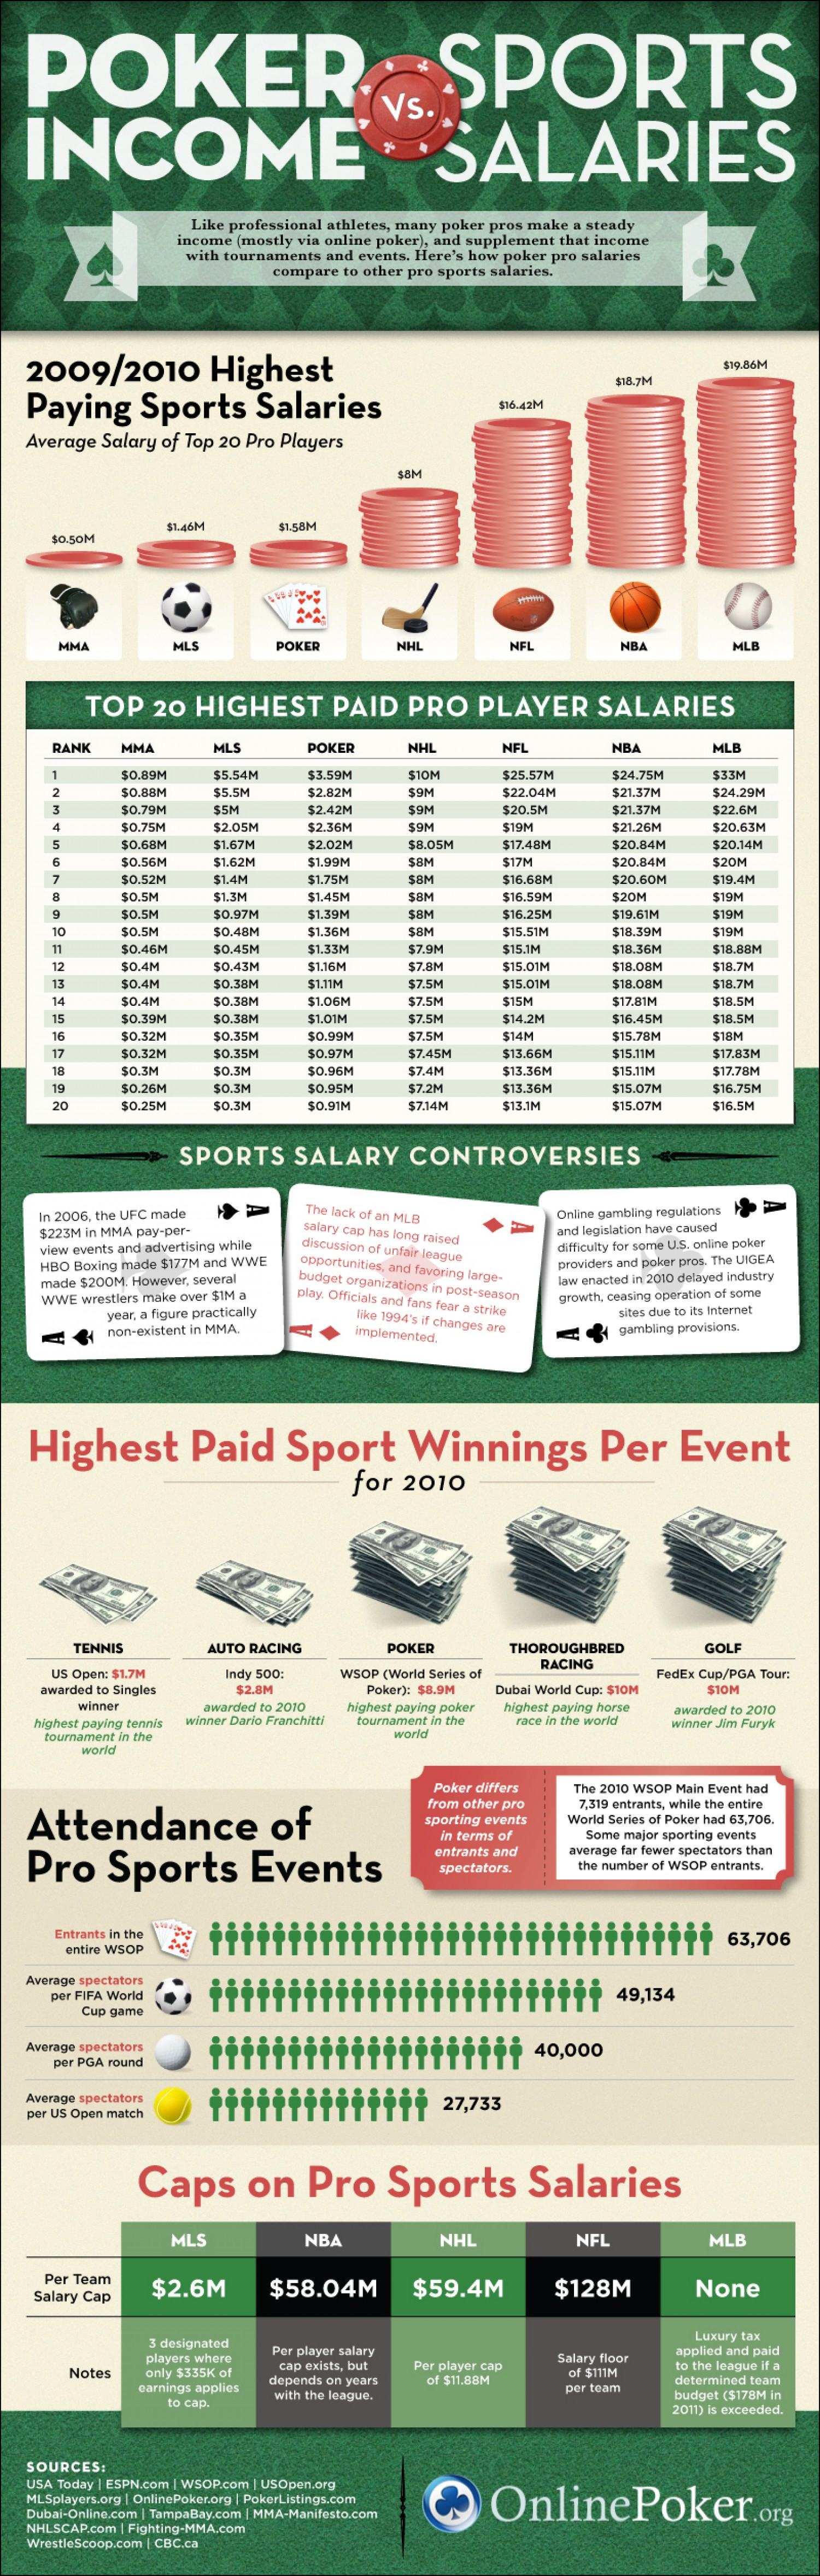 Poker Earnings Vs Sports Earnings